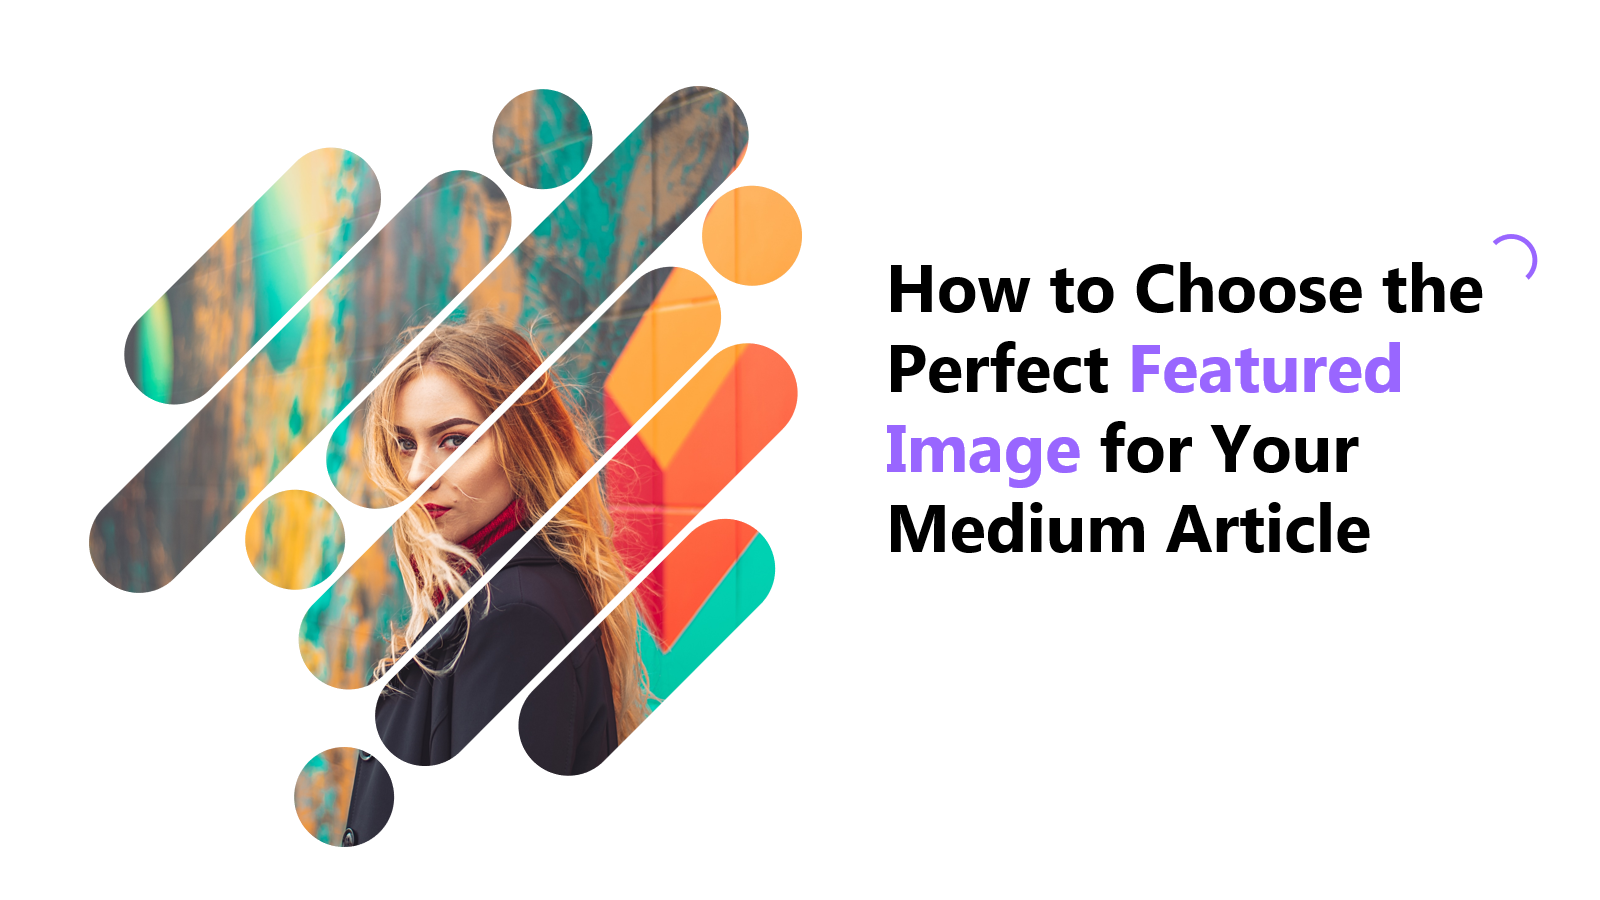 How to Choose the Perfect Image for Medium Article, medium article featured image, medium story image, medium cover image